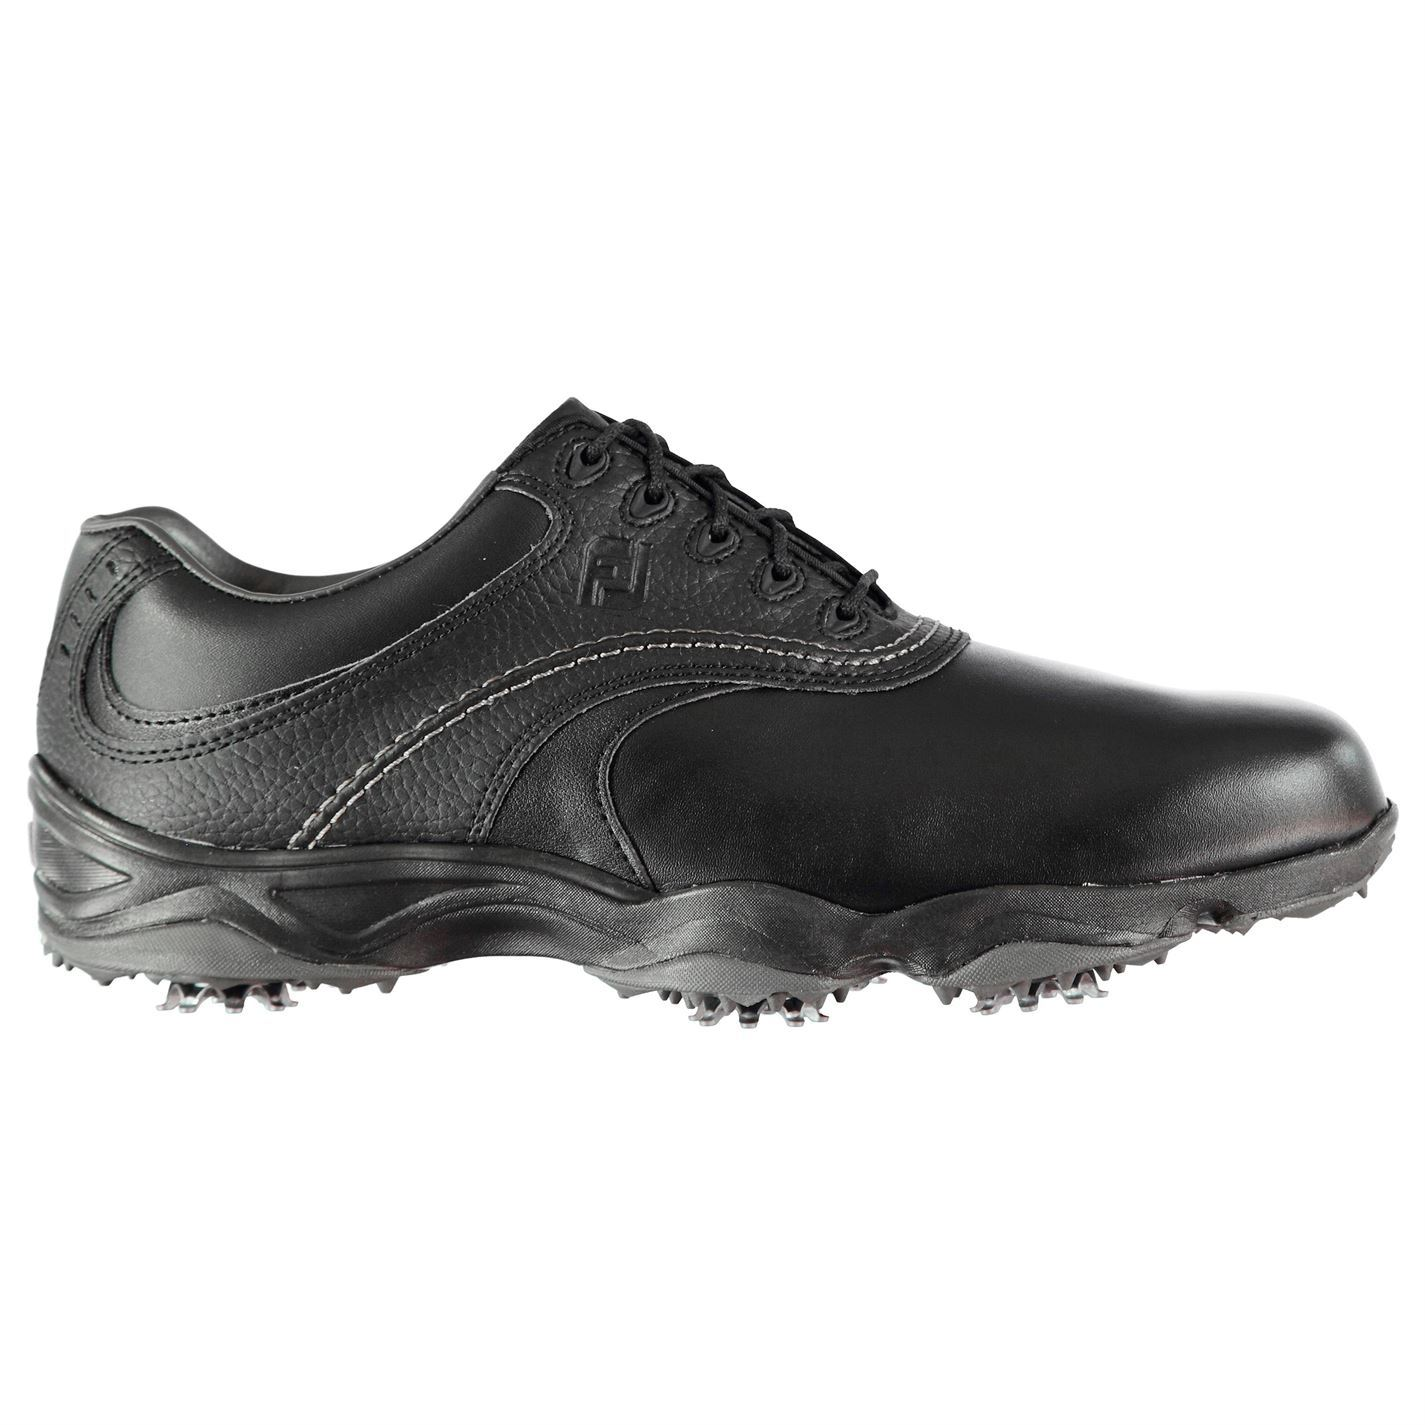 Footjoy-Originals-Golf-Shoes-Mens-Spikes-Footwear thumbnail 10